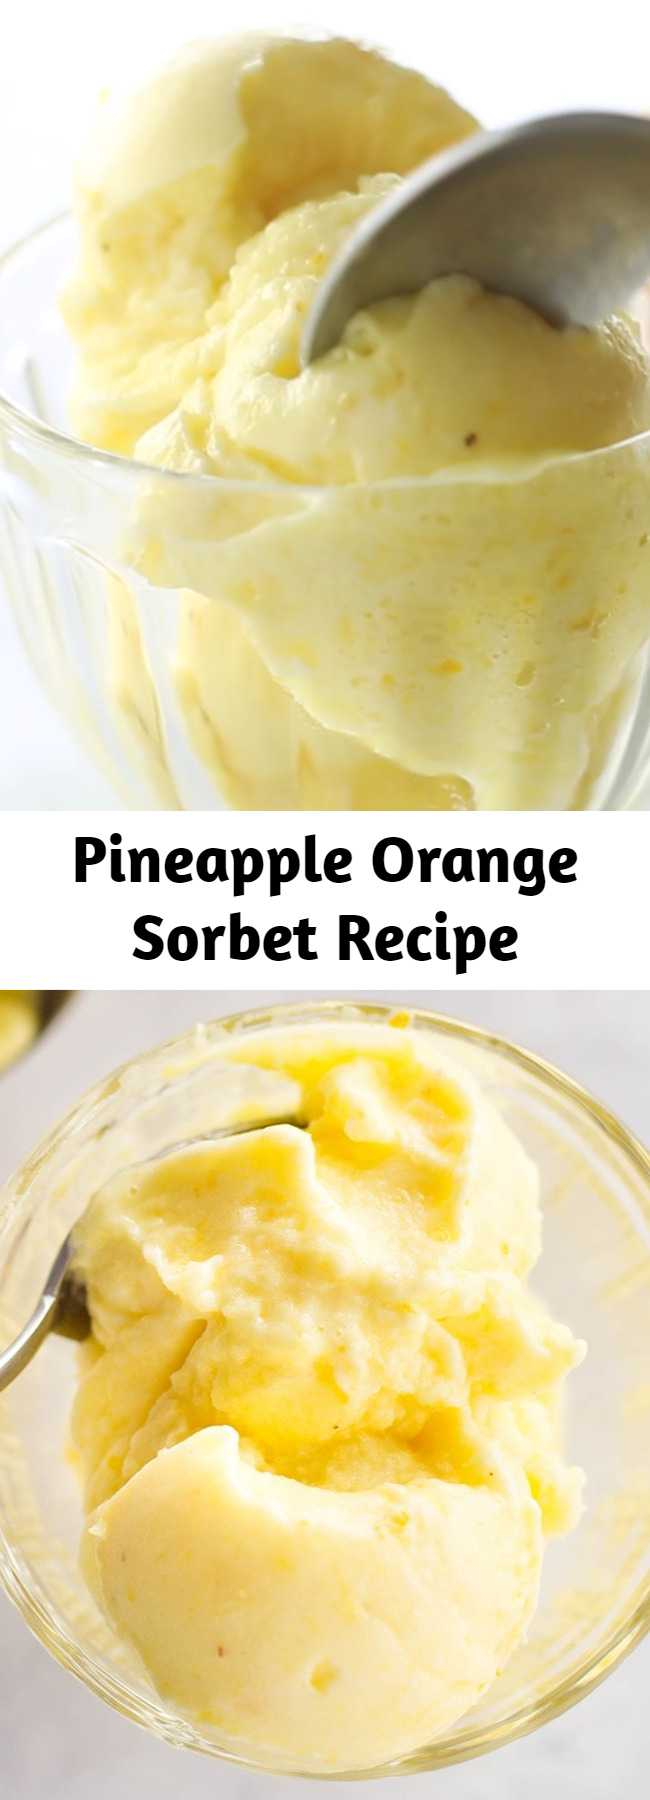 Pineapple Orange Sorbet Recipe - Sorbet is sweeter when you make it with two fruits instead of just one.